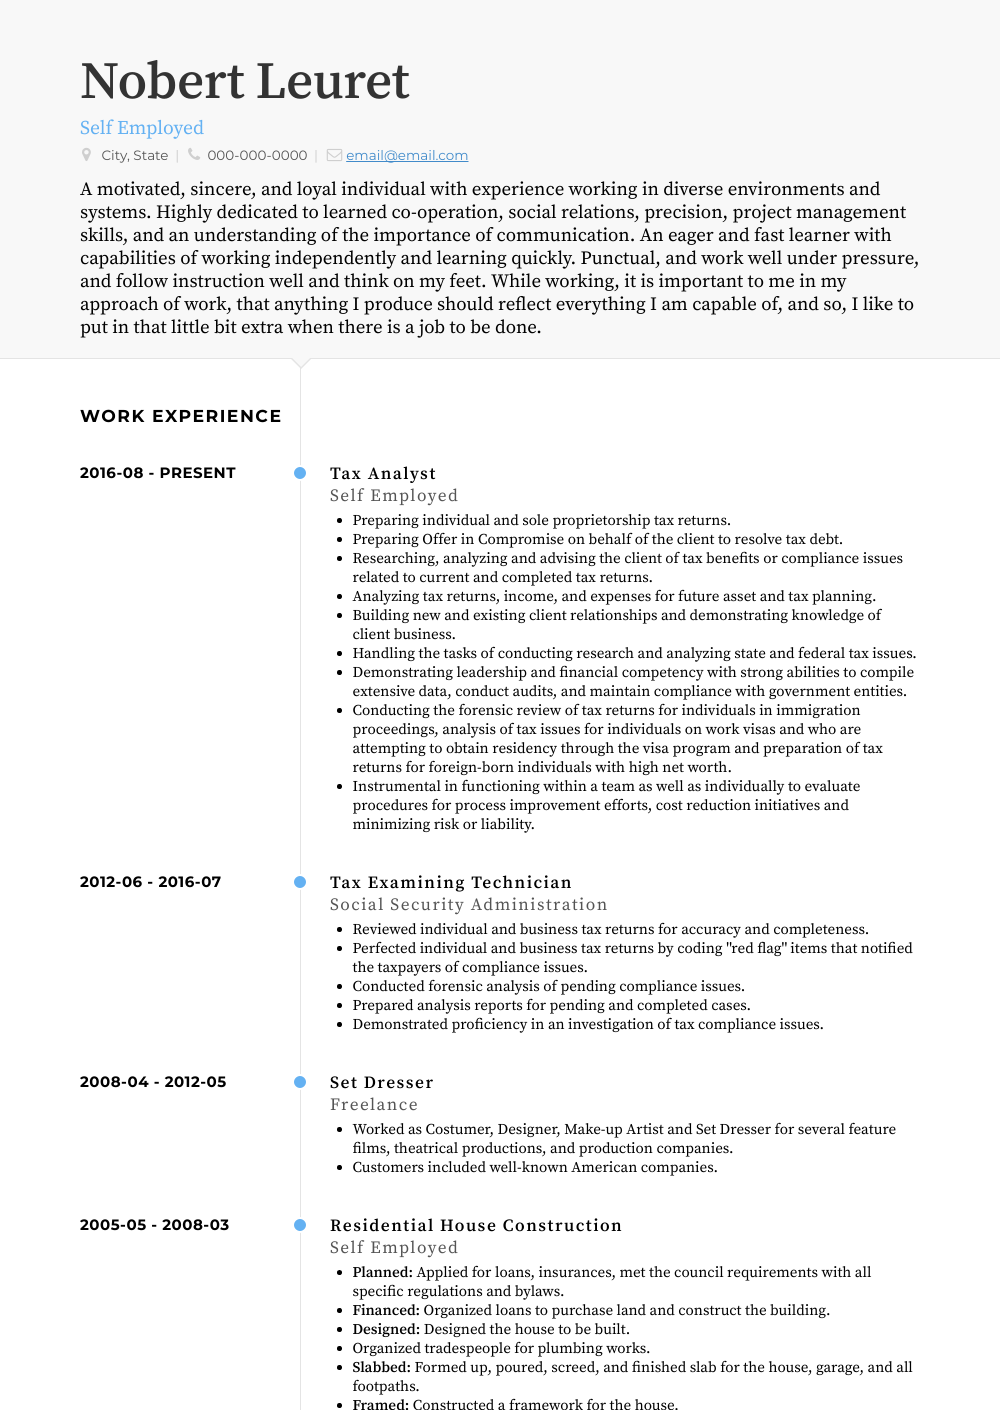 Self Employed Tax Analyst Resume Sample and Template